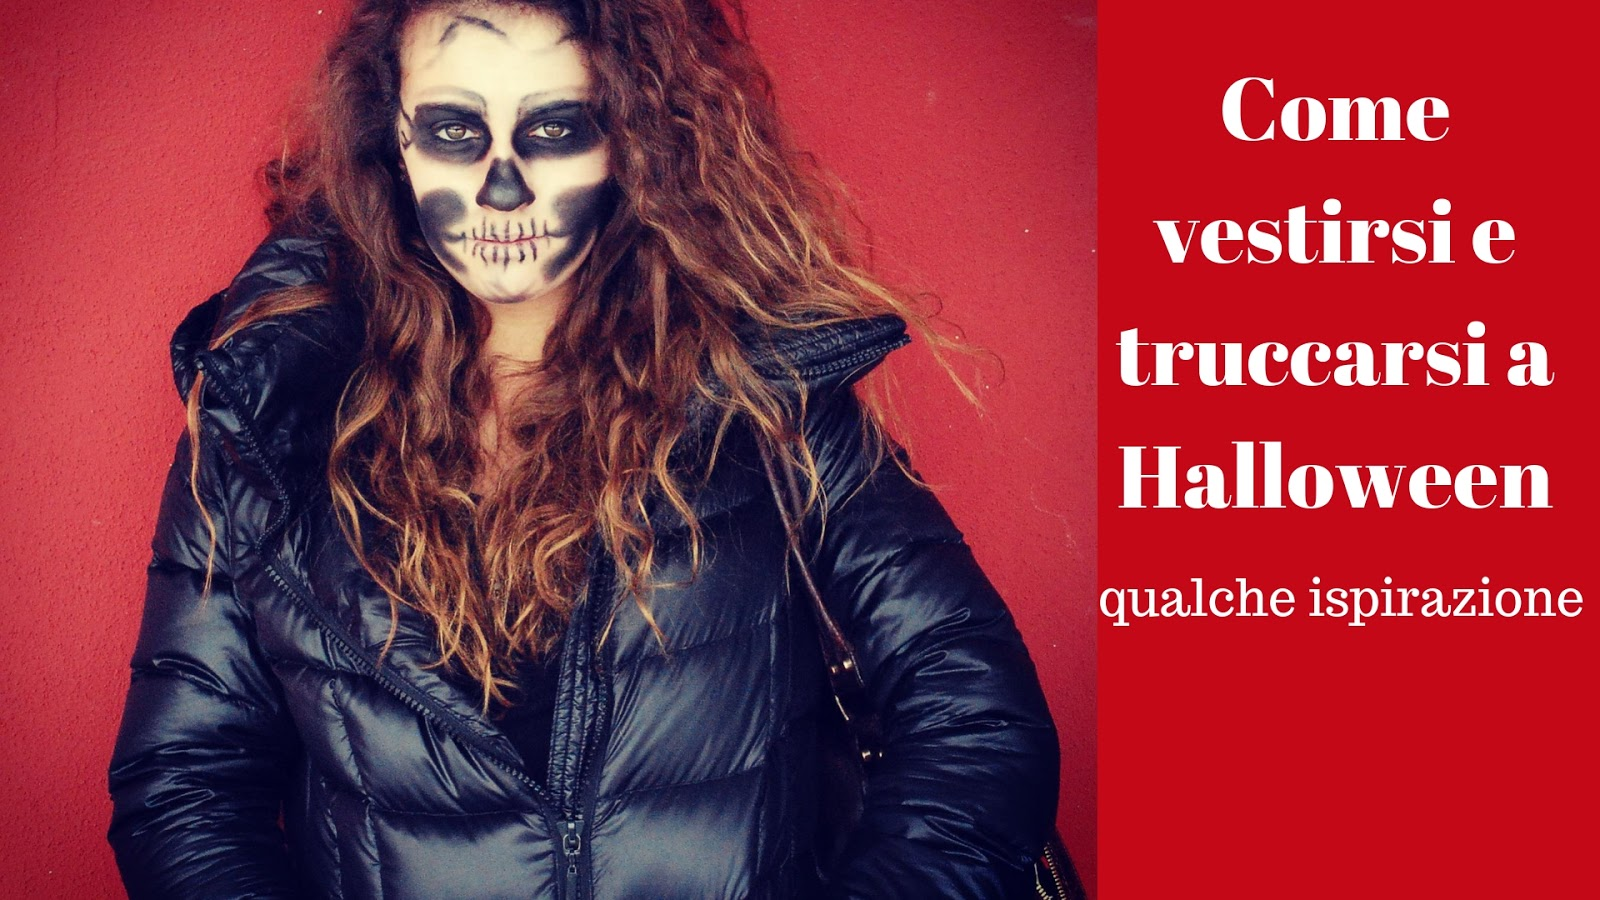 come vestirsi e truccarsi a Halloween: qualche ispirazione, valentina rago, fashion need, fashion blog italia